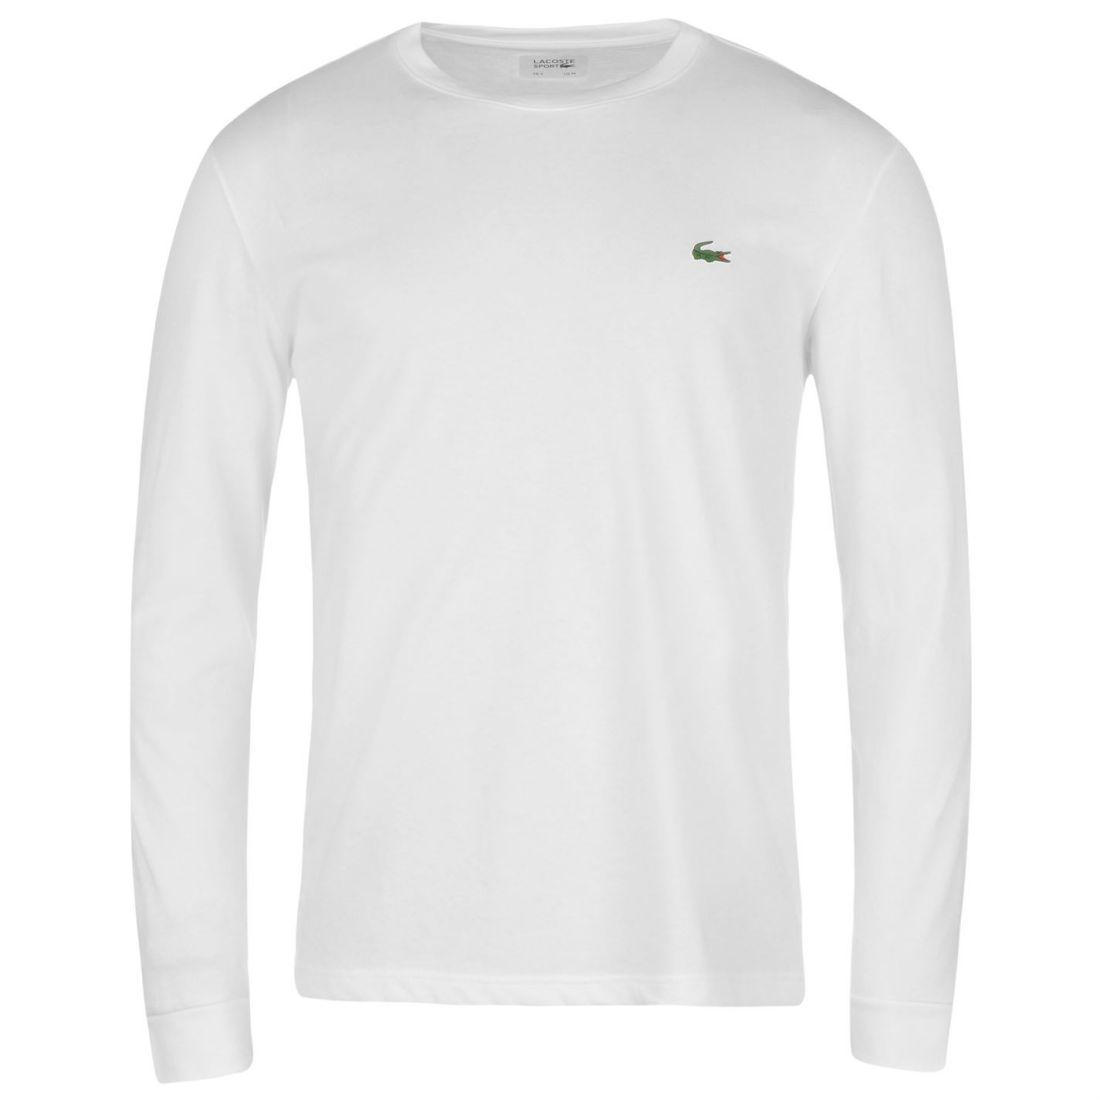 57fdeadf38 Details about Mens Lacoste Basic Logo Long Sleeve T Shirt New